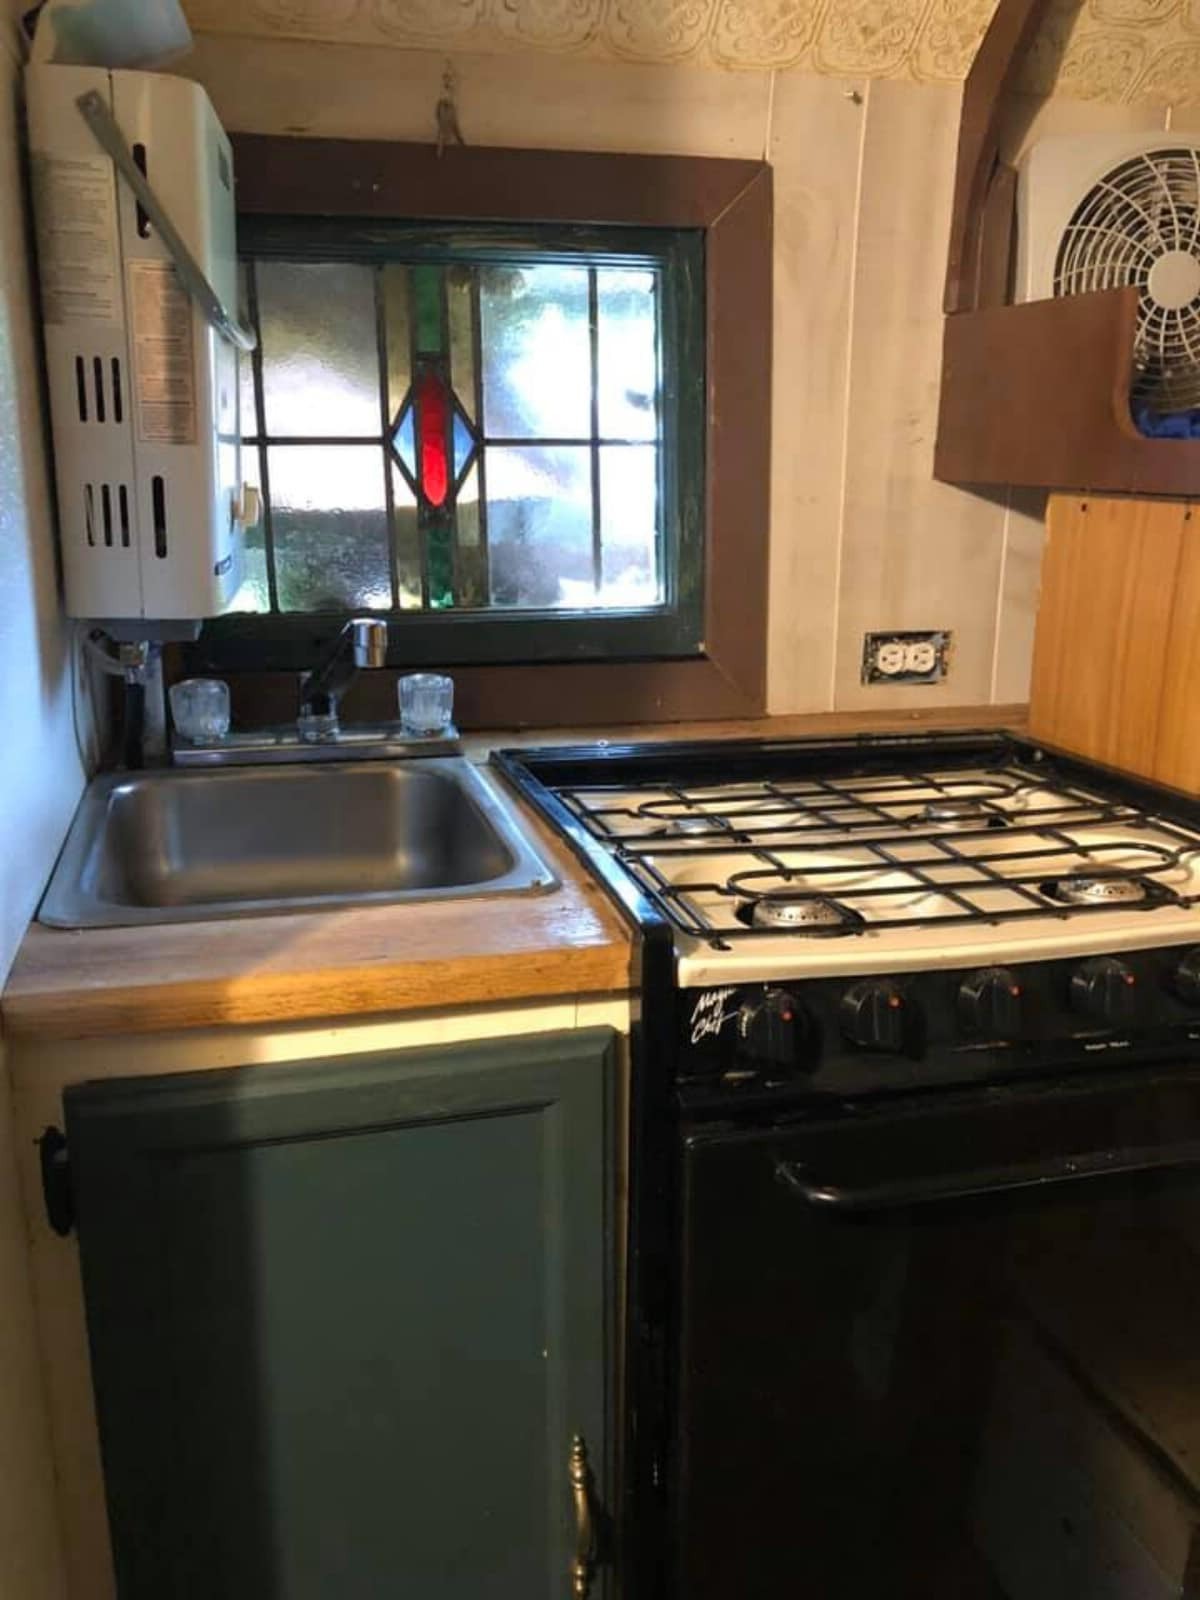 Gas stove and sink in camper